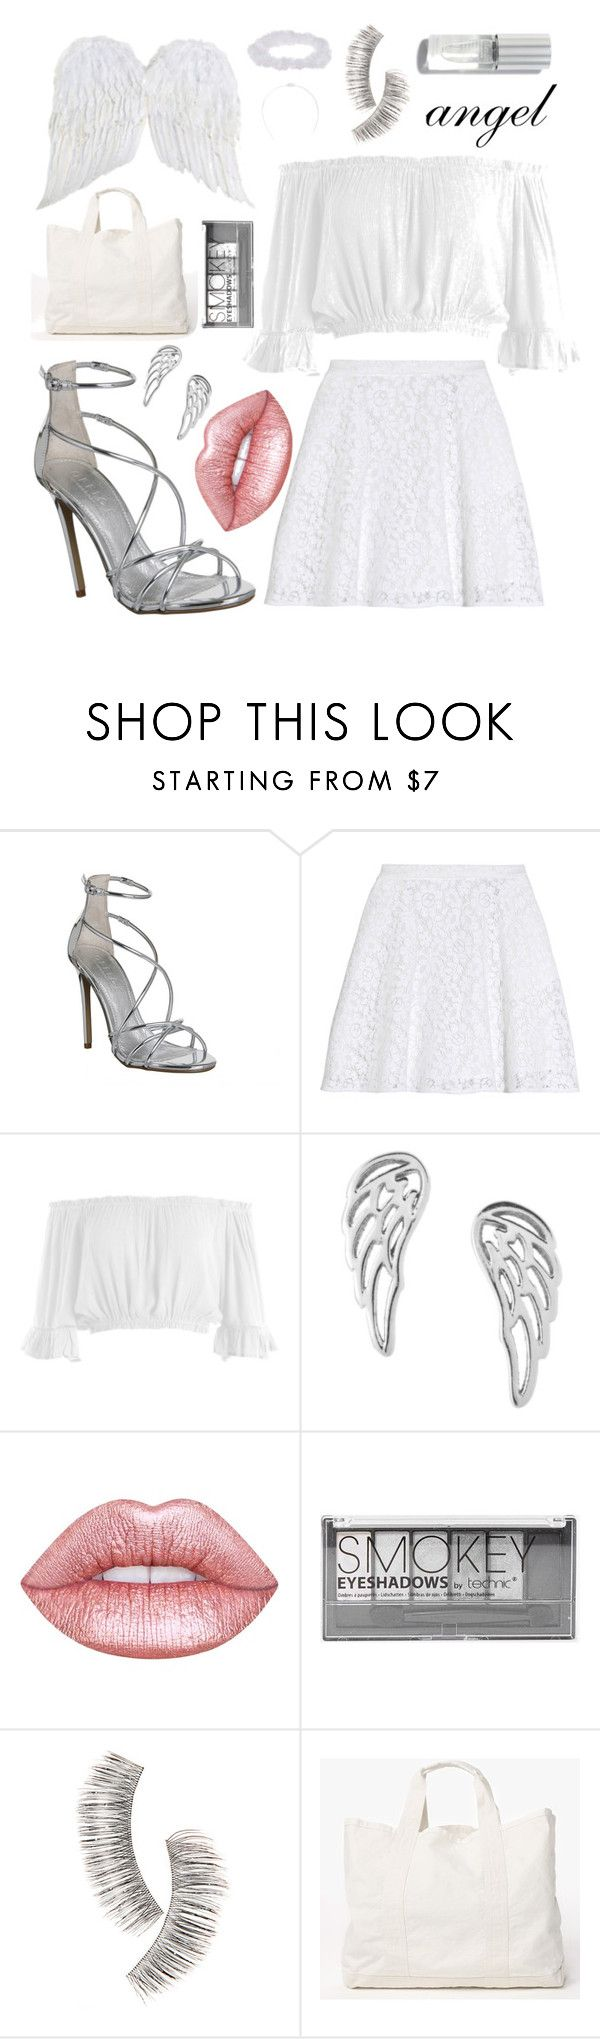 """""""Angel"""" by stylebearxx ❤ liked on Polyvore featuring Office, MSGM, Sans Souci, Mminimal, Lime Crime, Boohoo, Beauty Is Life, James Perse, halloweencostume and DIYHalloween"""